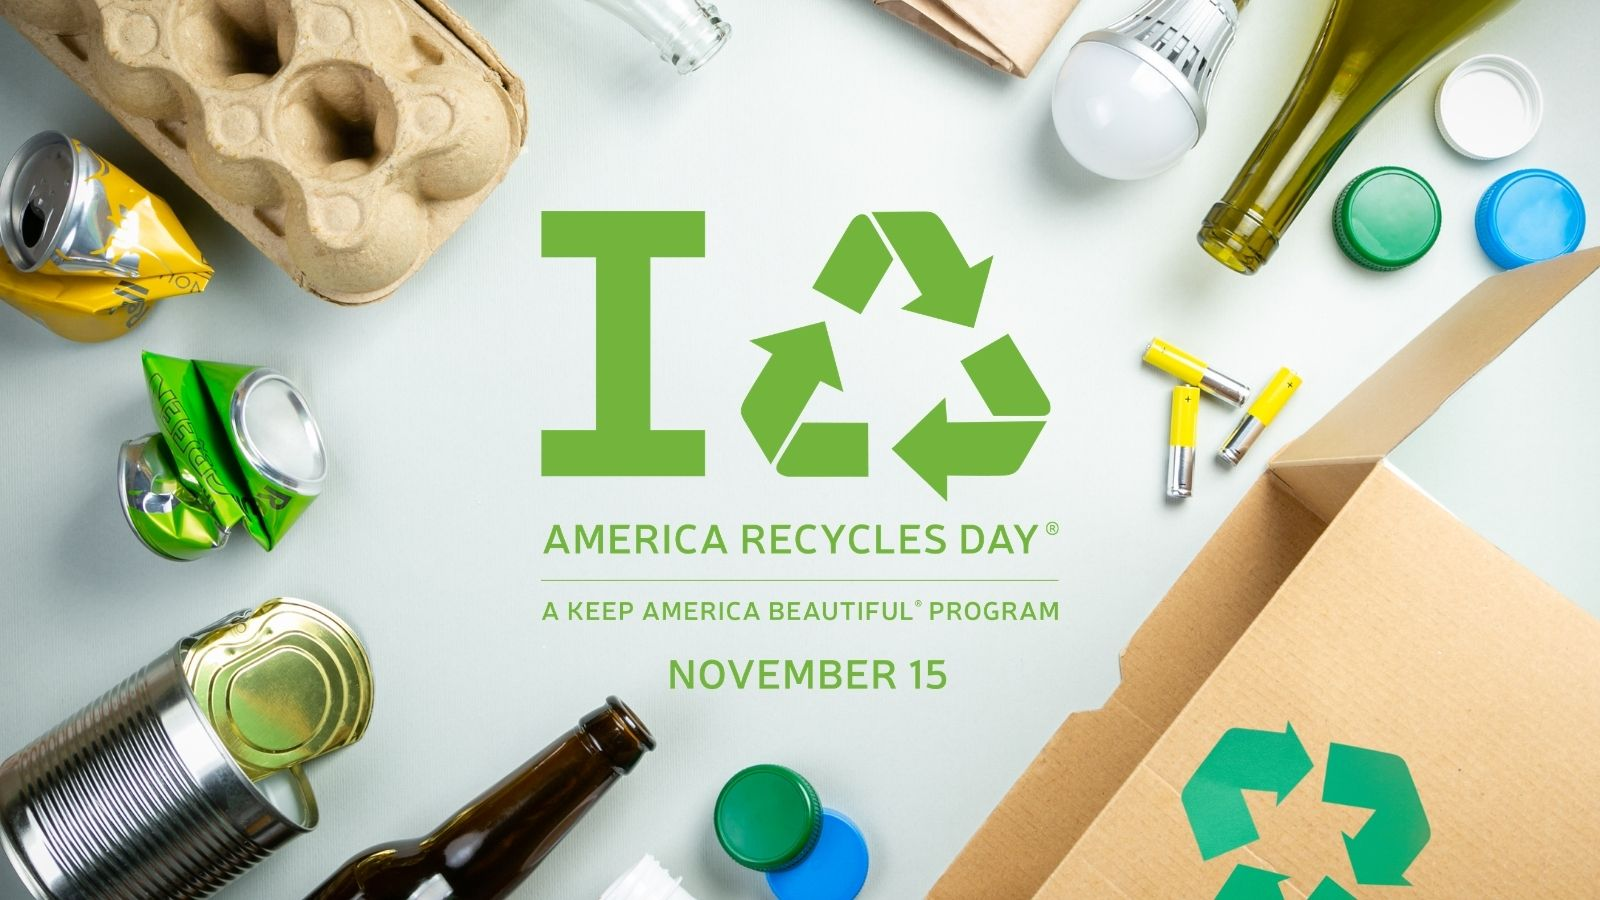 Keep America Beautiful Celebrates 2020 America Recycles Day: Focus on Individual Recycling Action and Behavior